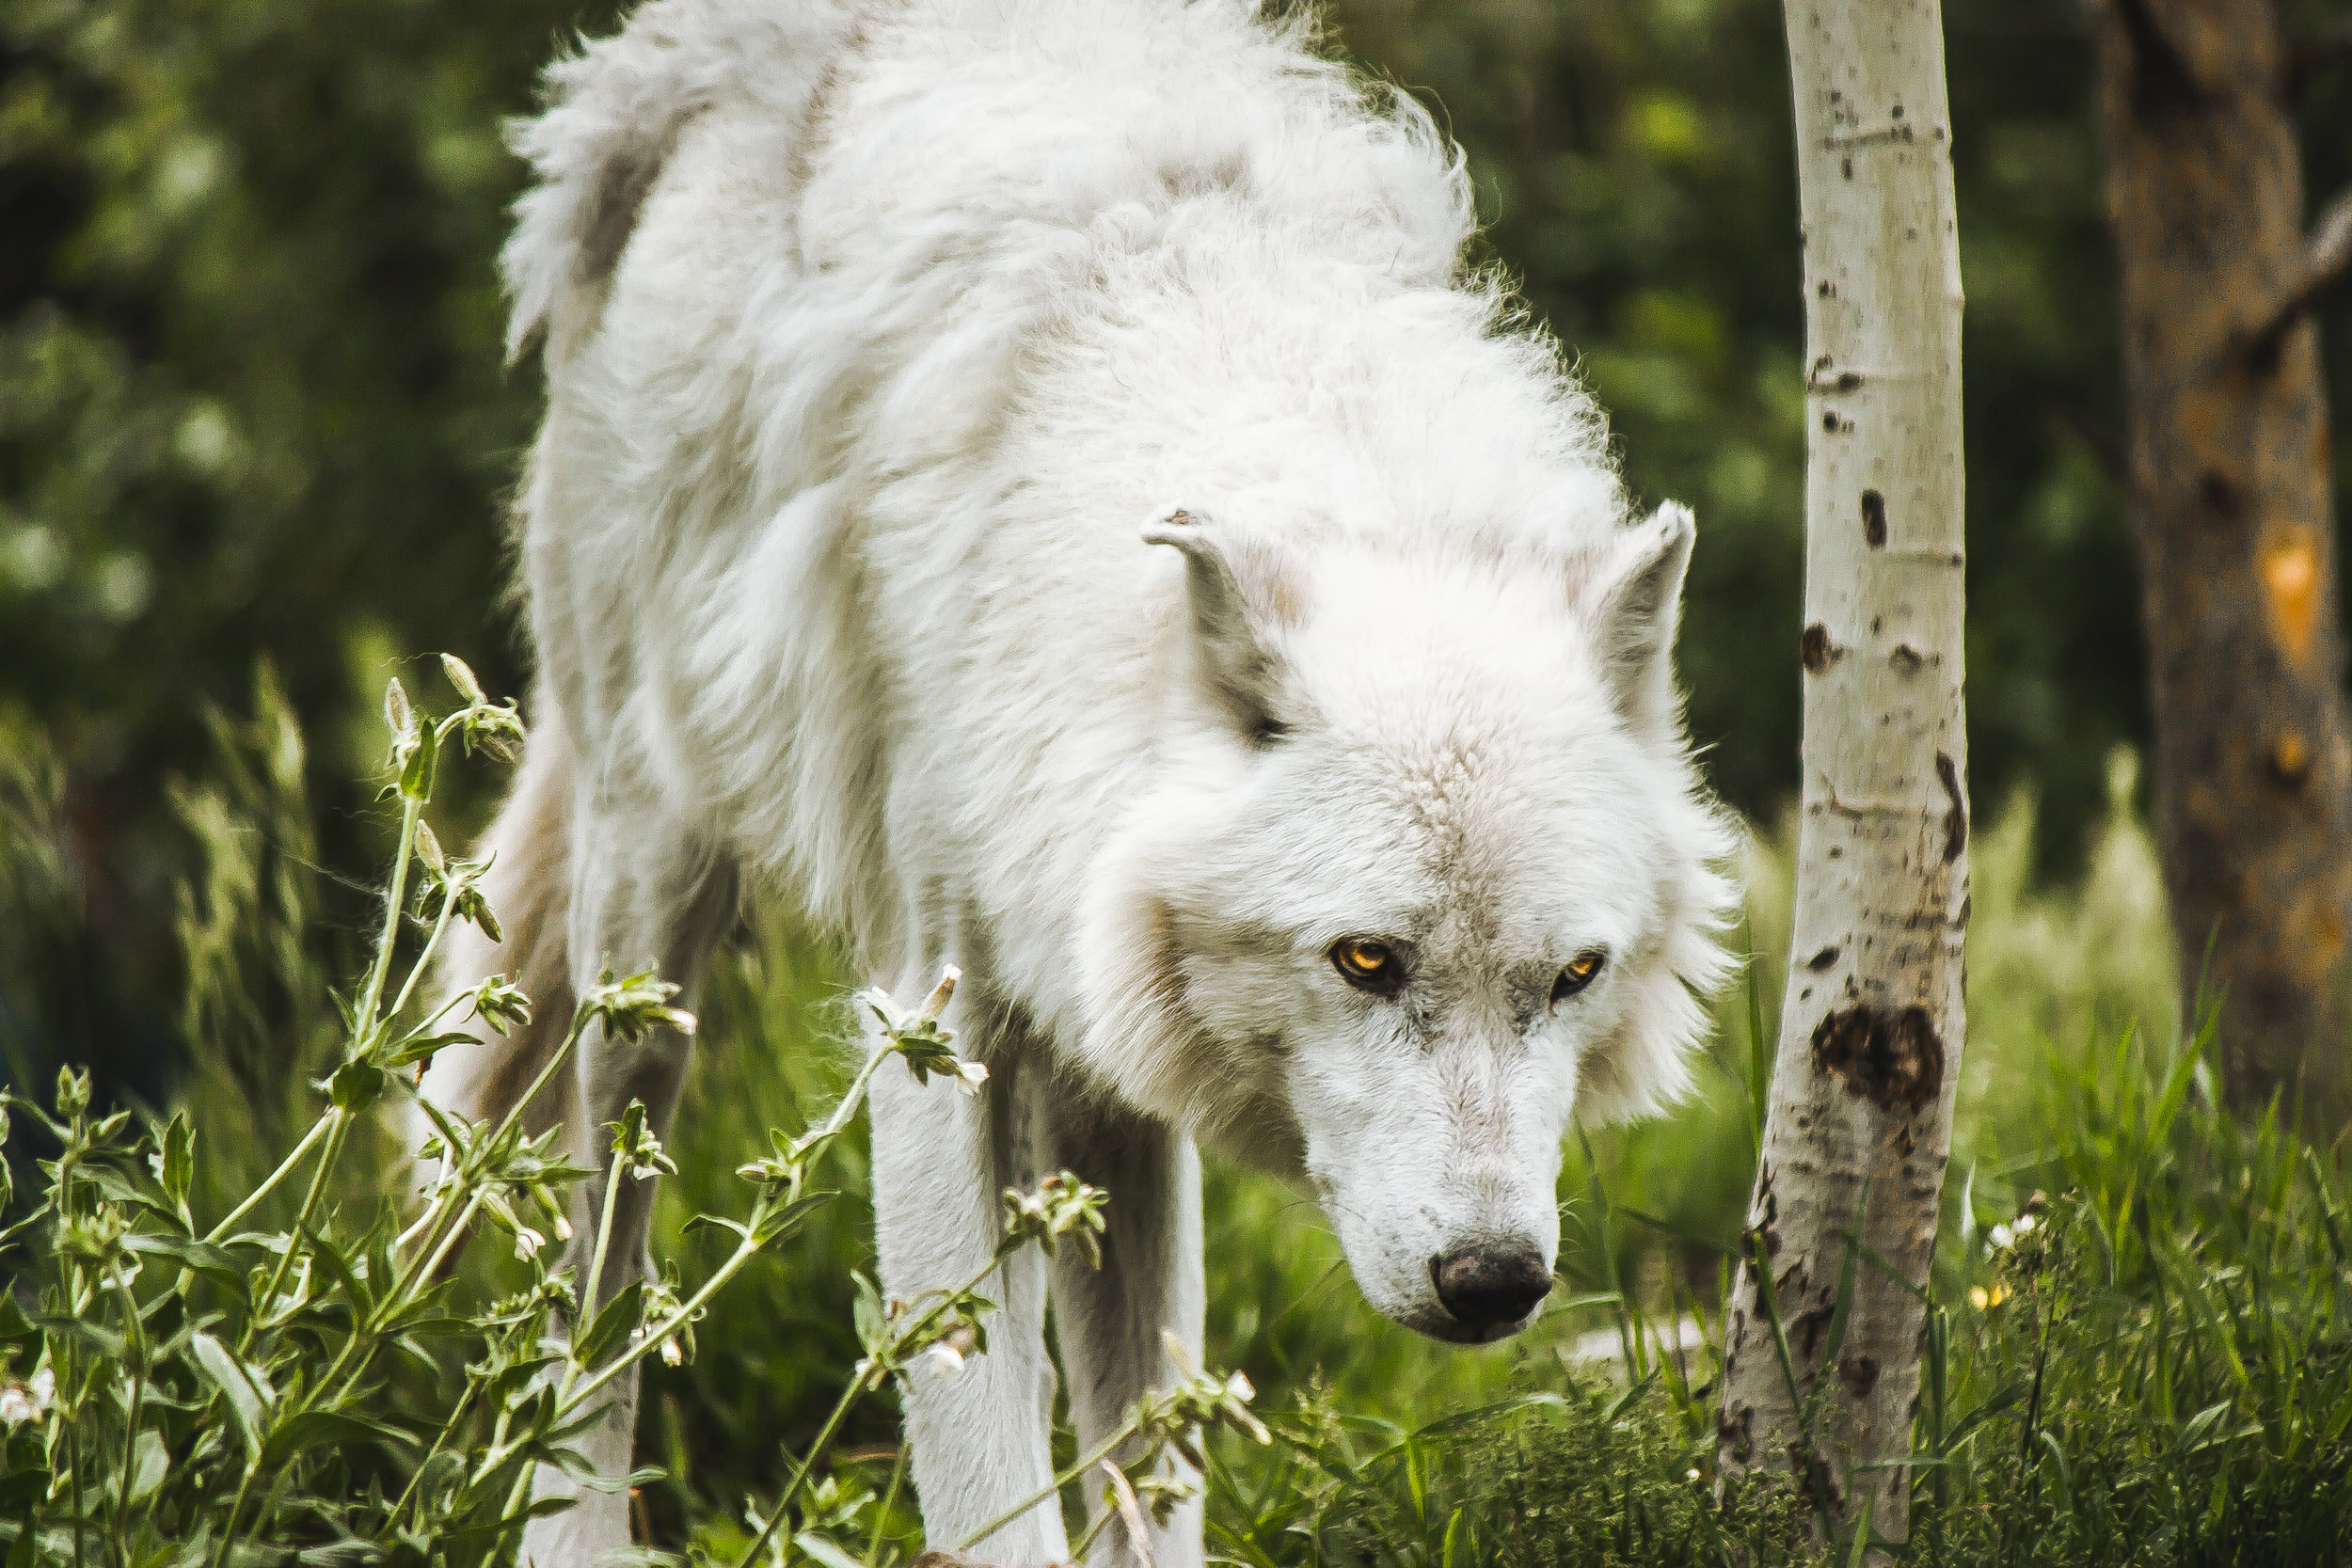 White Wolf in Grass - Yellowstone National Park - Wyoming Guide Co